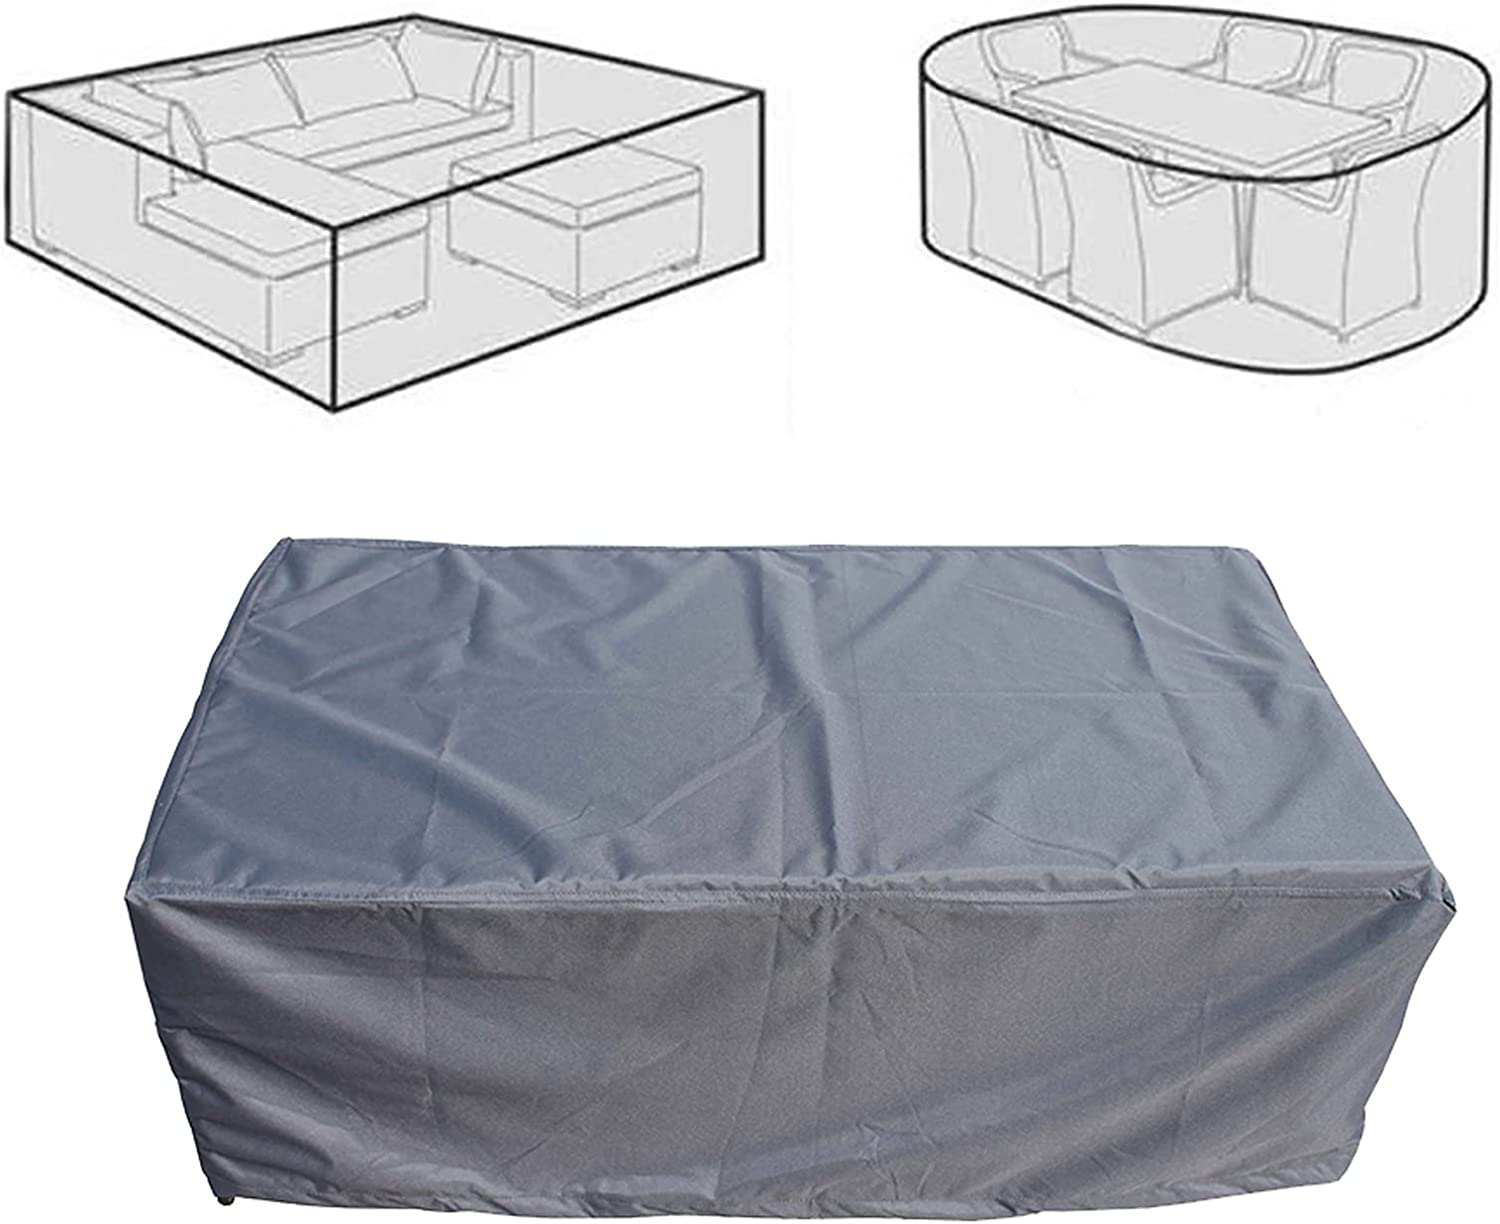 AWSAD Garden Sofa Max 47% OFF Cover All-Weather D Upgraded Material Cheap bargain Bottom